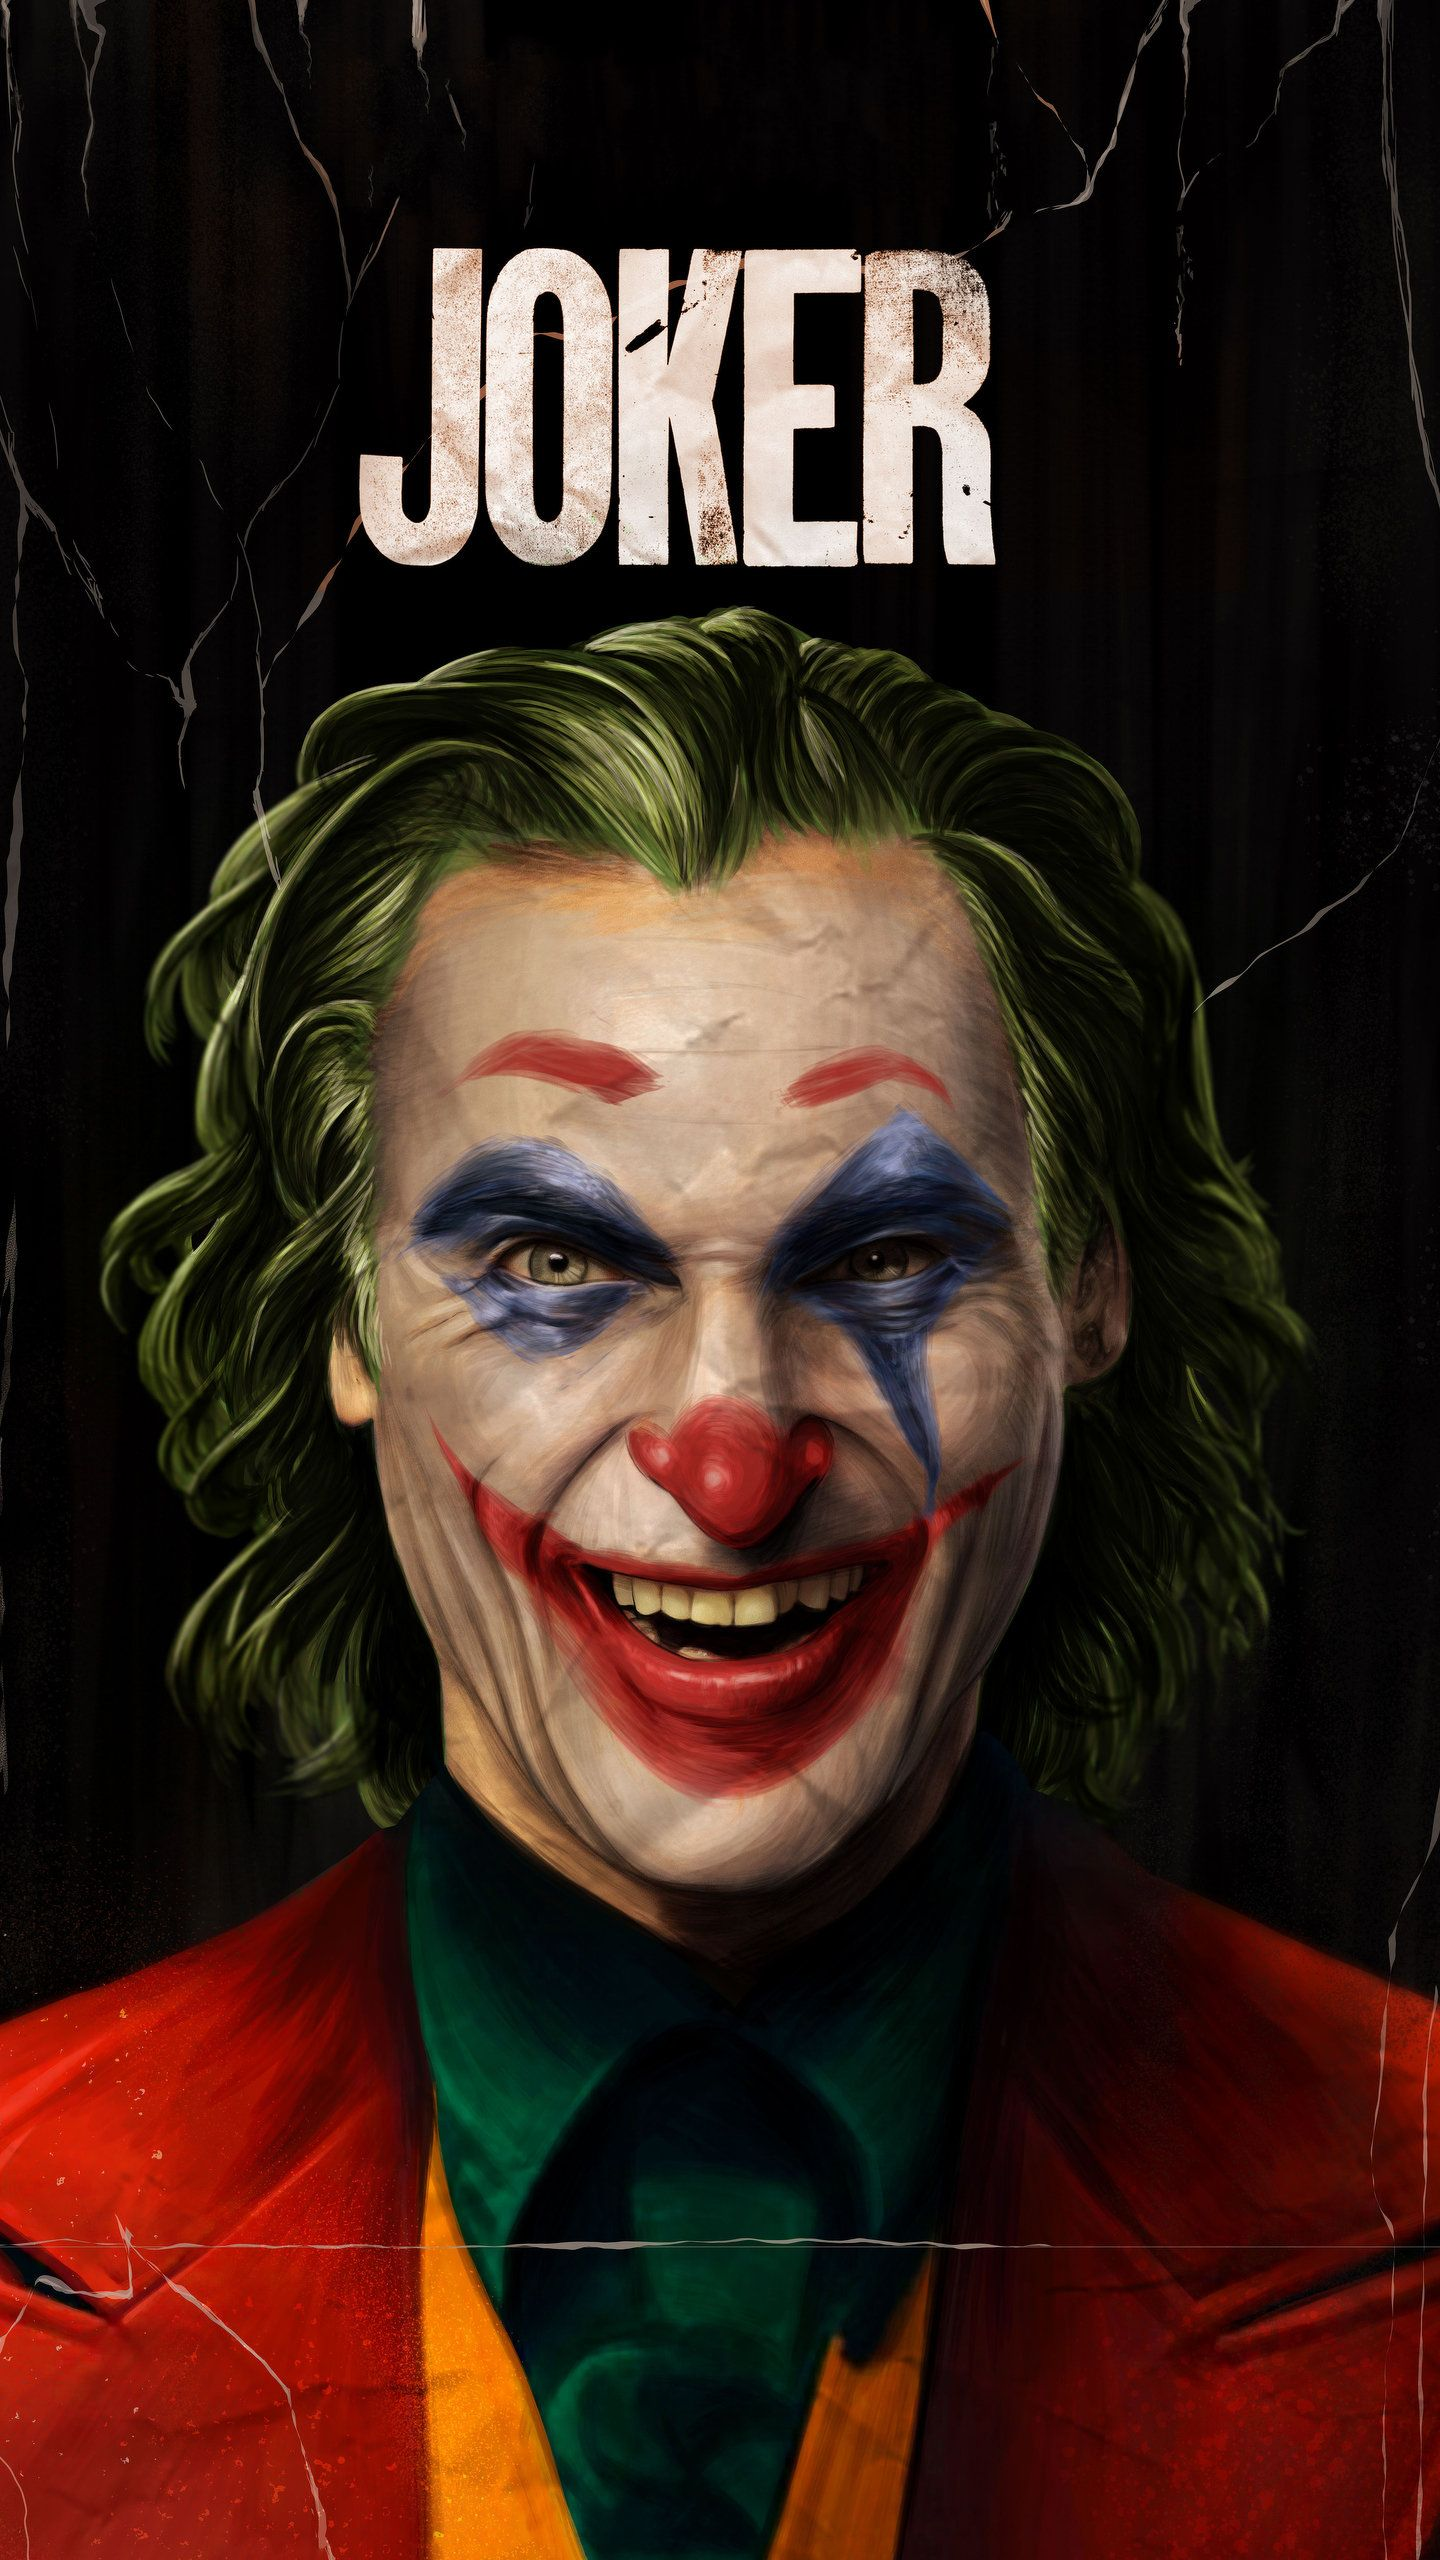 Joker All The Way Hd Superheroes Wallpapers Photos And Pictures Id 44757 Joker Iphone Wallpaper Joker Wallpapers Batman Joker Wallpaper